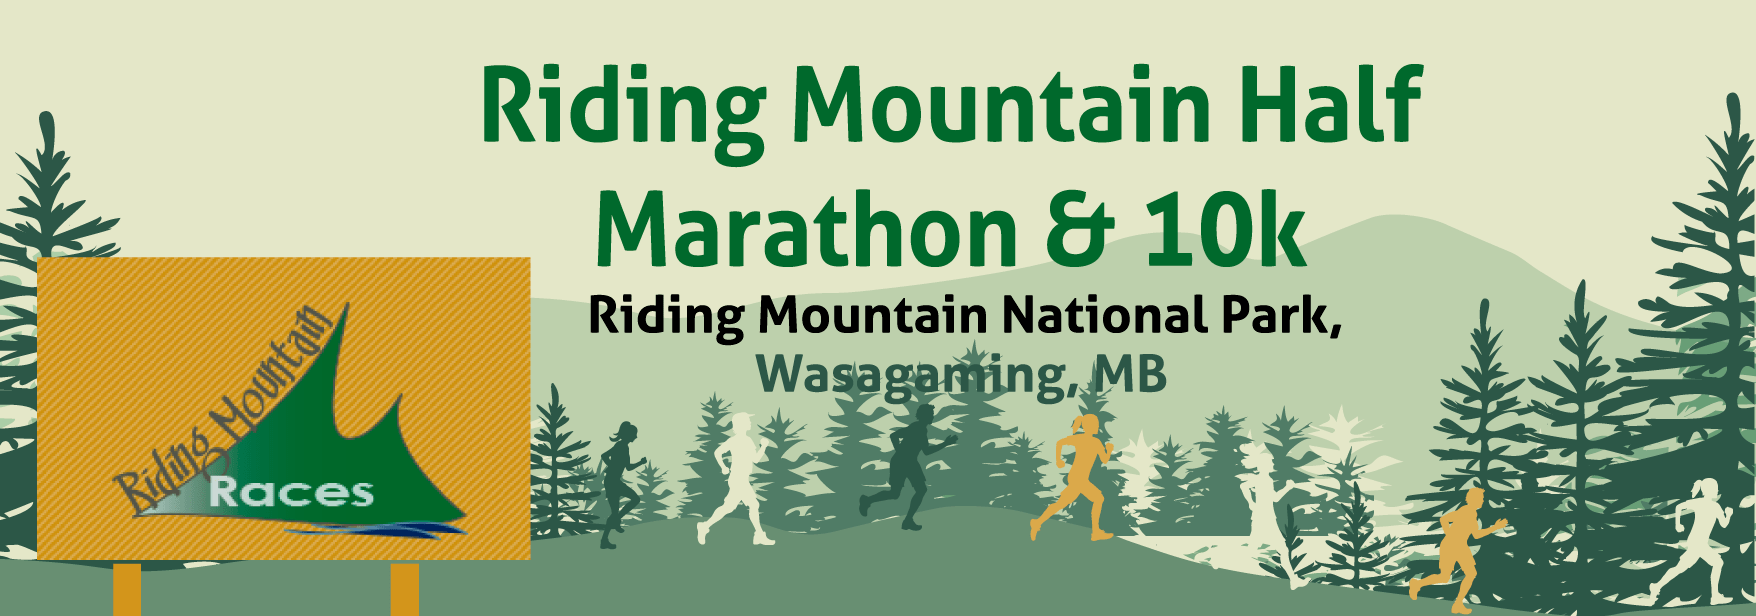 Riding Mountain Marathon 21.1K & 10K